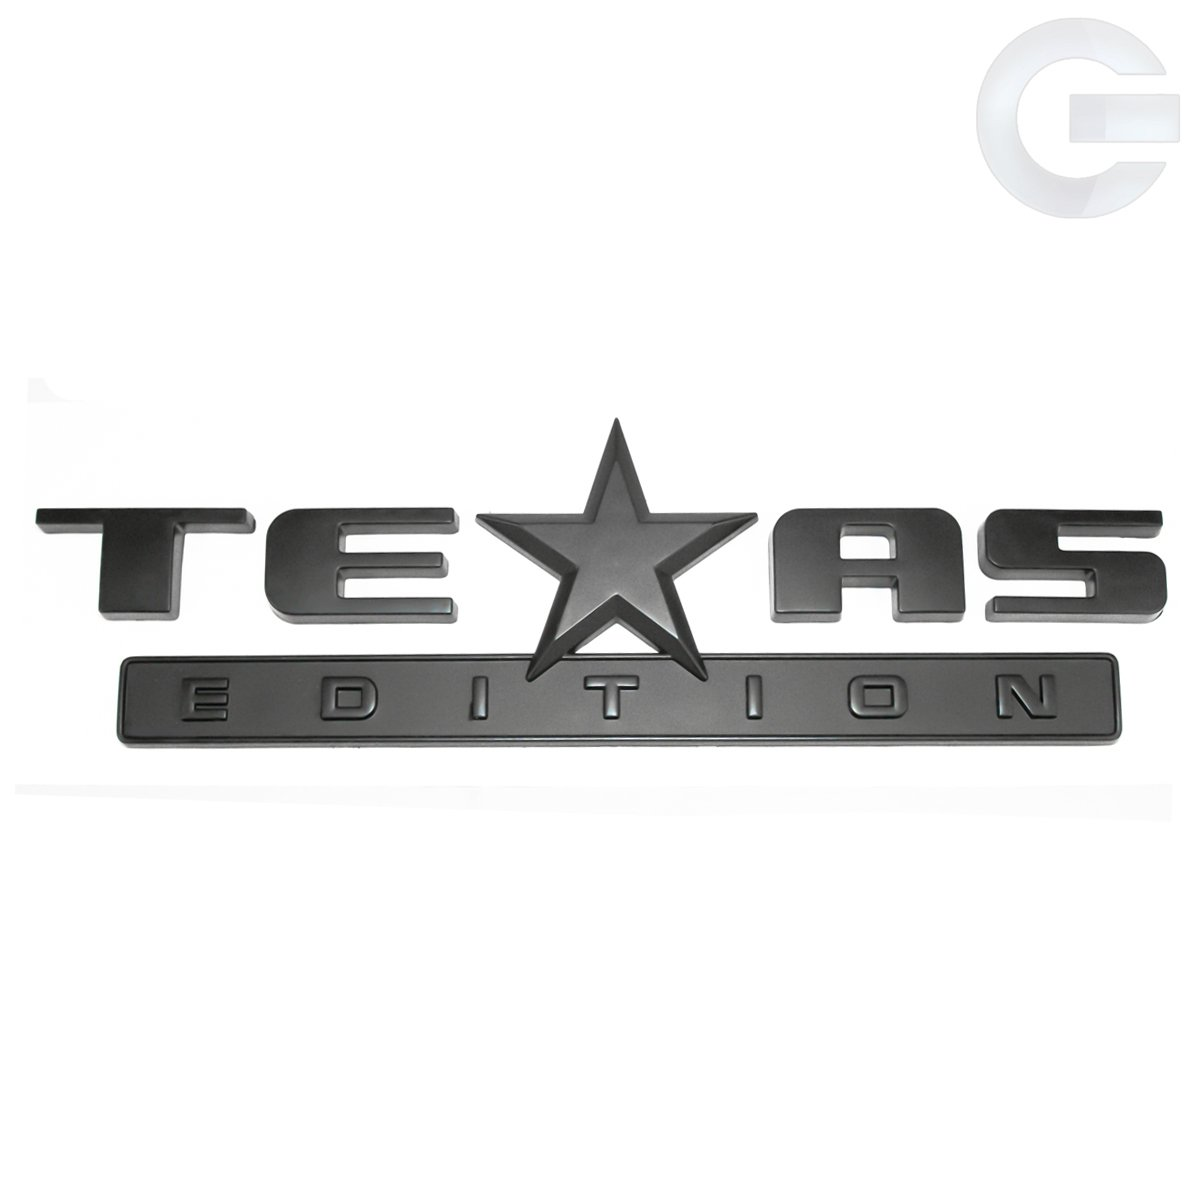 All Chevy black chevy symbol : Amazon.com: Matte Black Texas Edition Truck Emblem Badge Chevy GMC ...